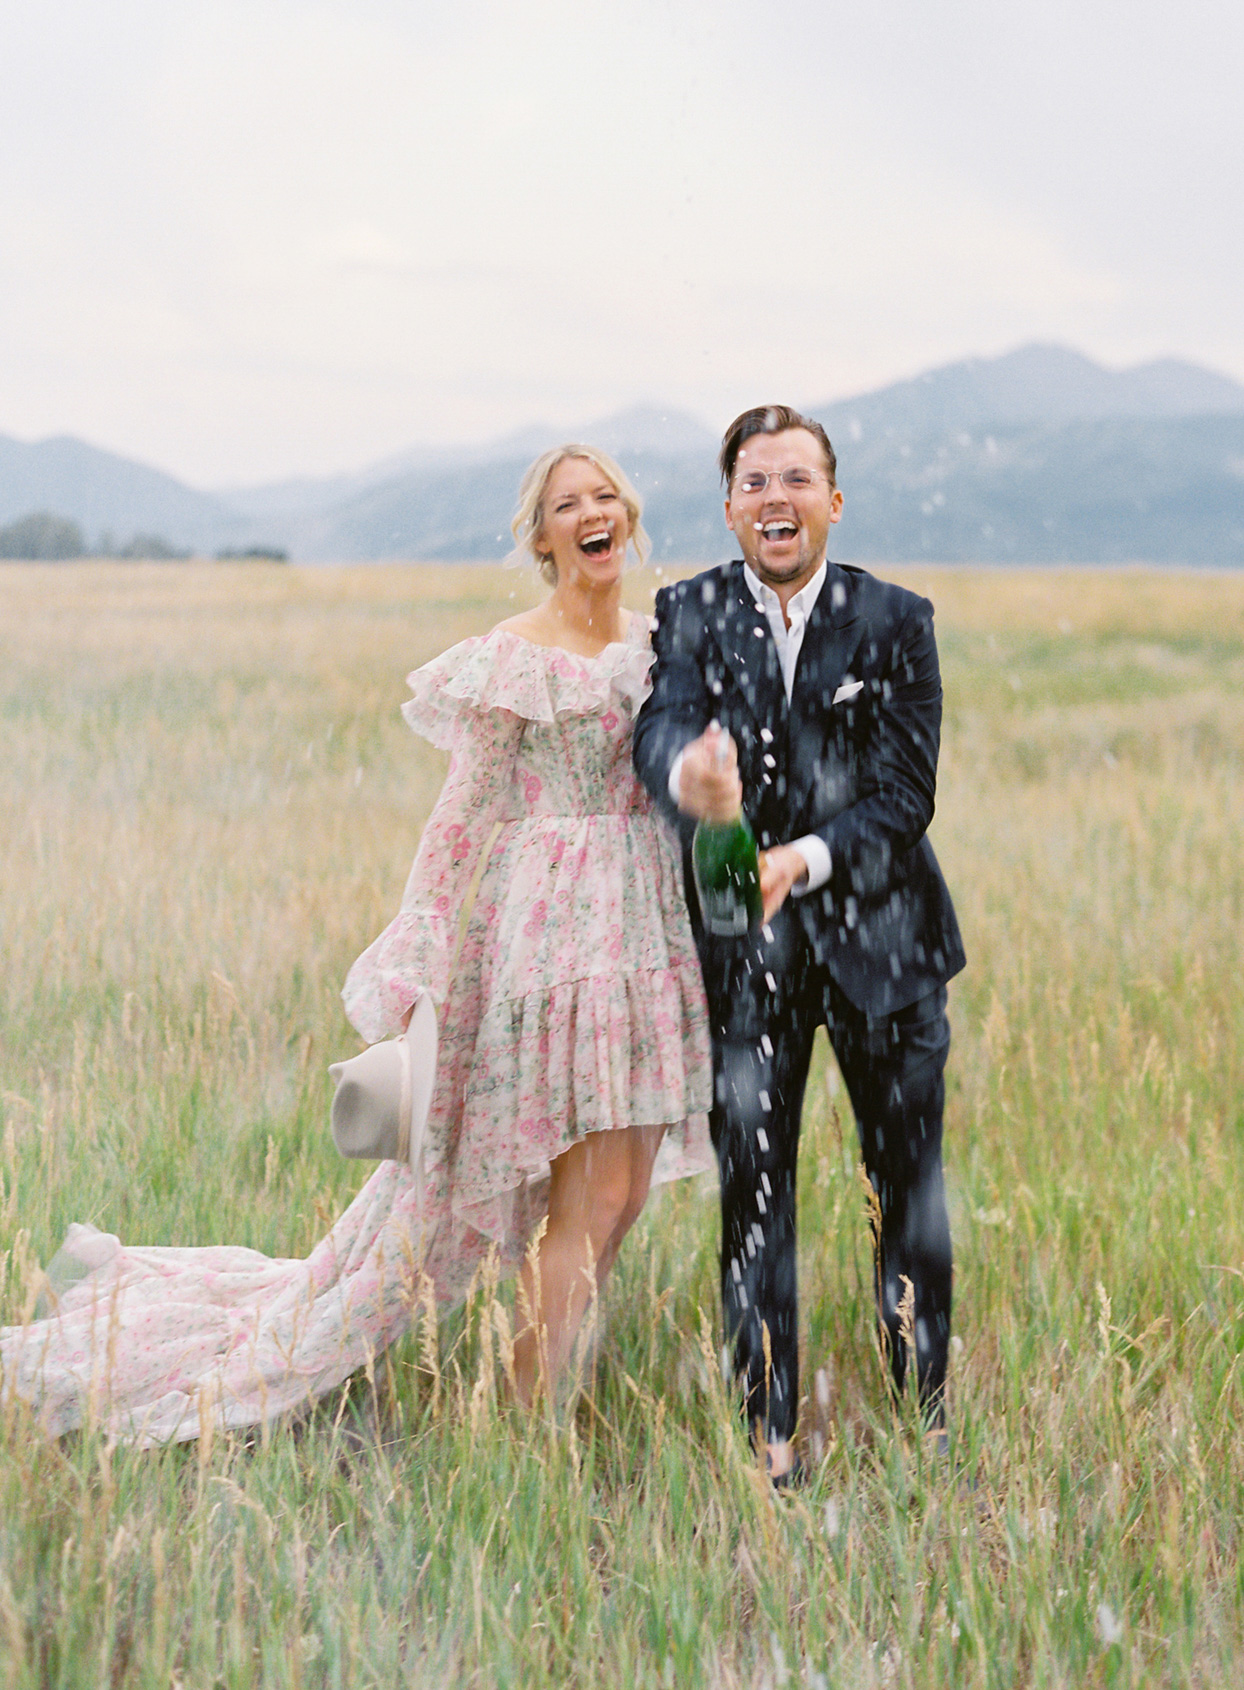 bride and groom popping champagne in a field